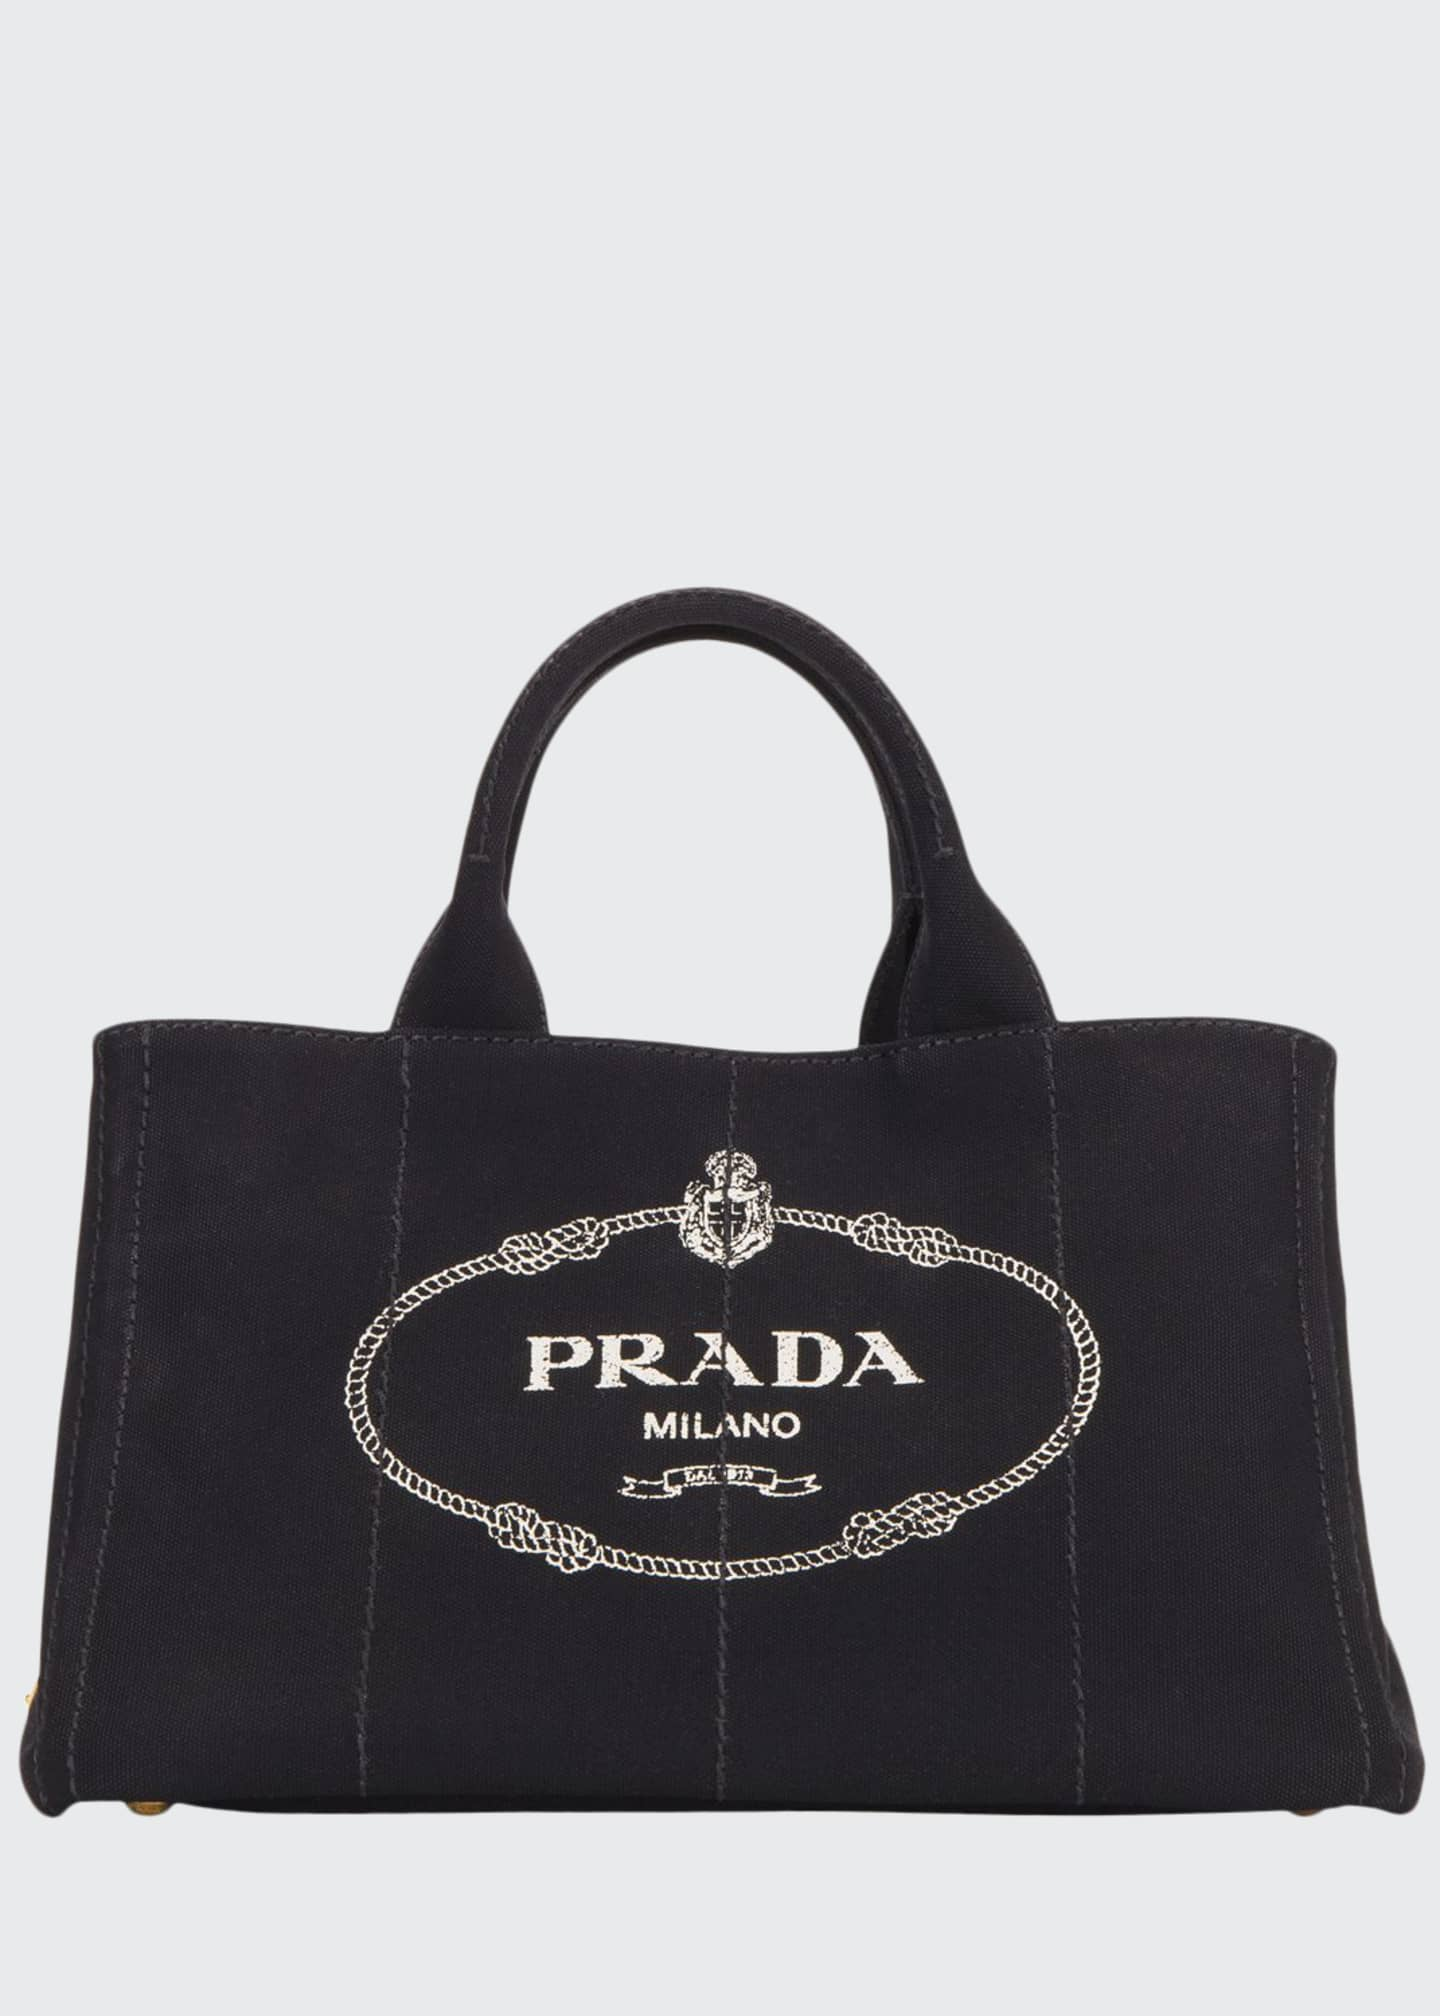 Prada Canapa Medium Logo Tote Bag